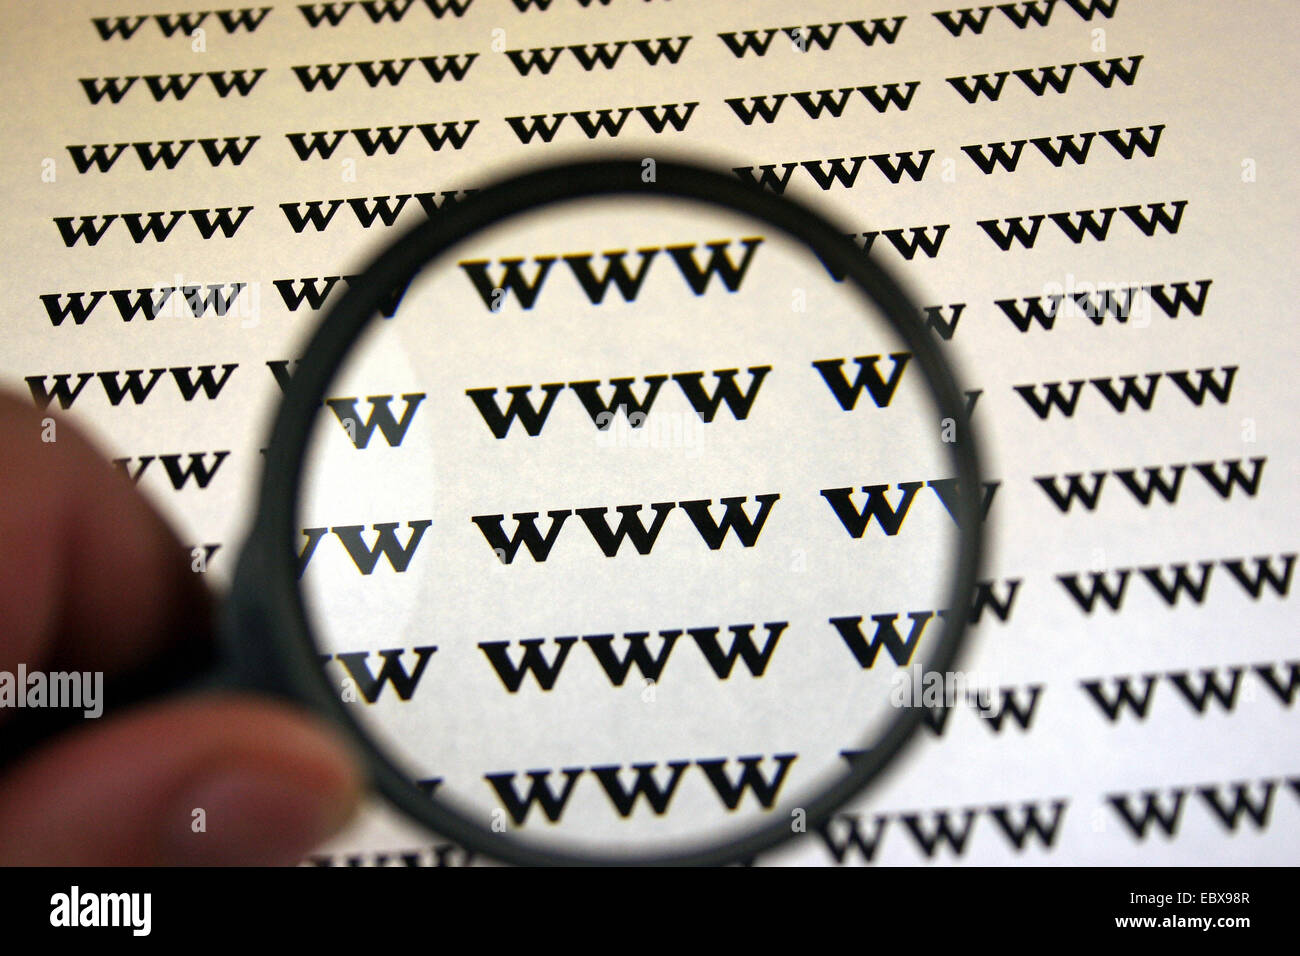 internet search, www under the magnifying glass - Stock Image